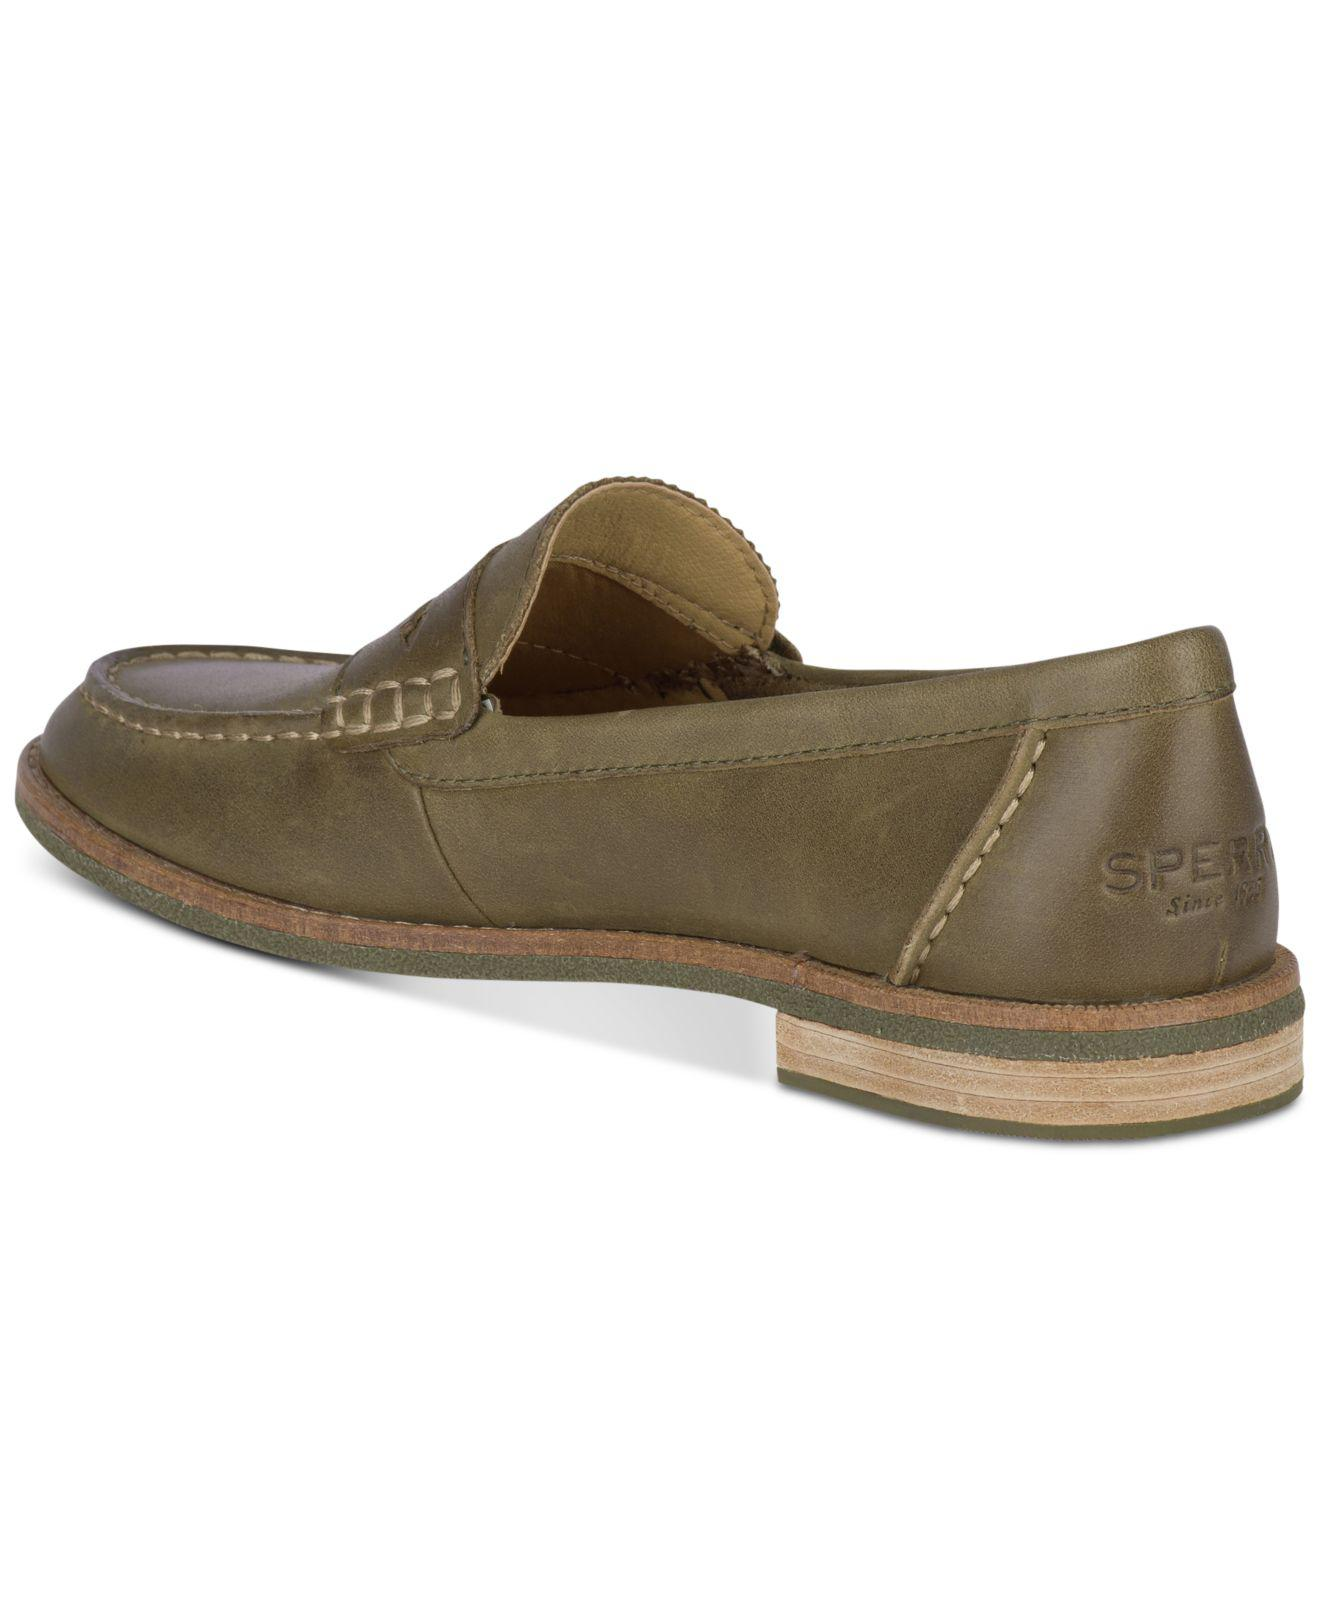 e12e97dc61b Sperry Top-Sider - Green Seaport Penny Memory Foam Loafers - Lyst. View  fullscreen